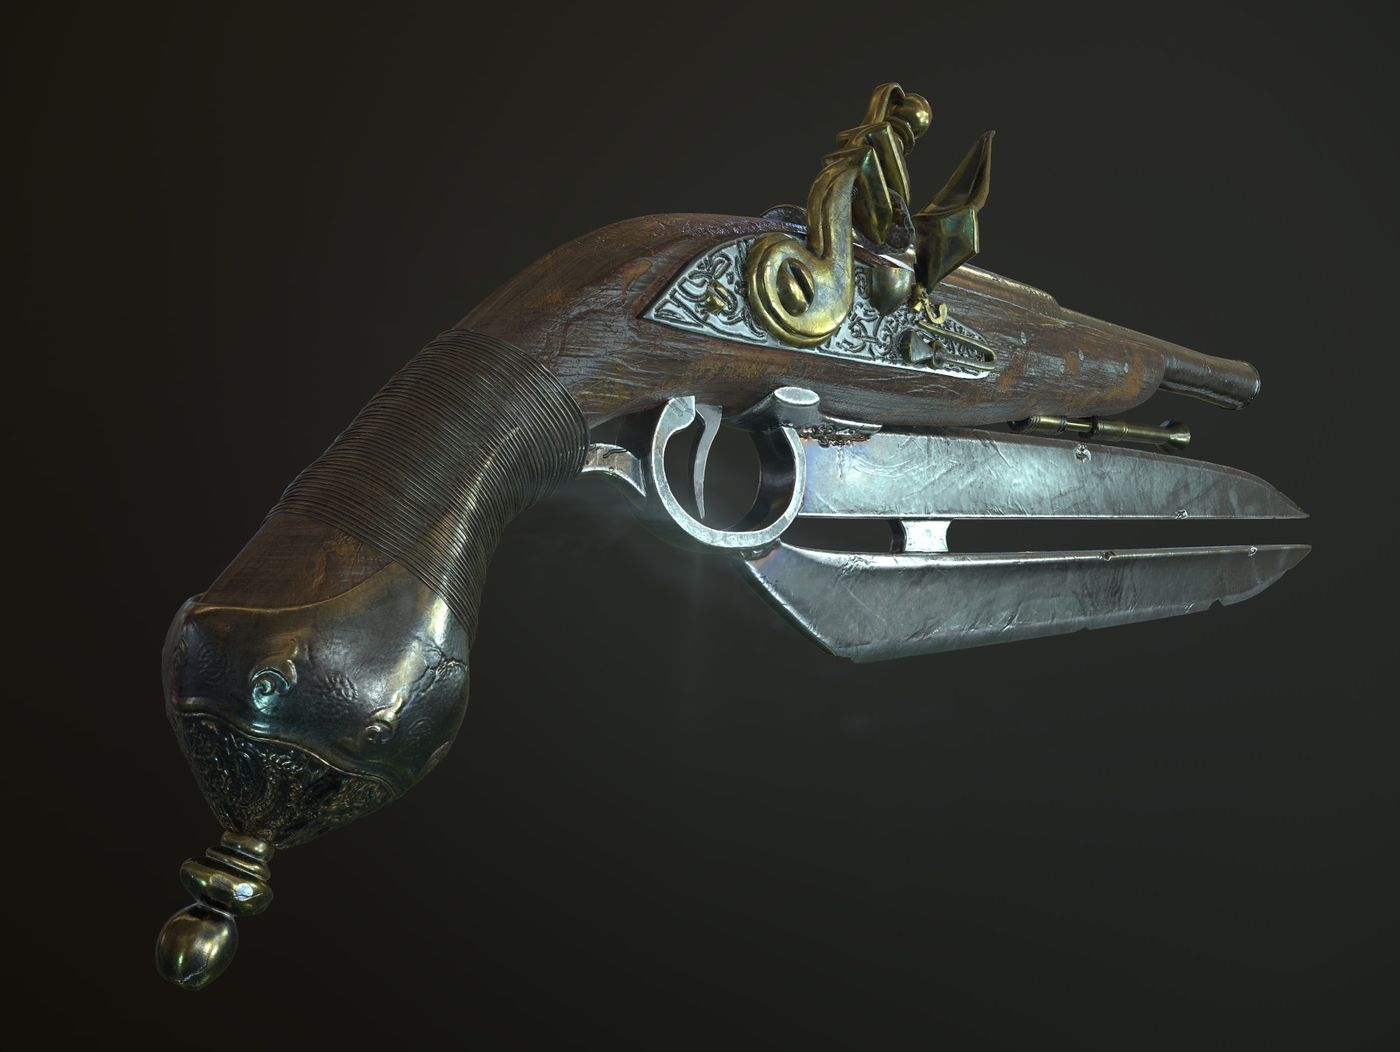 Double Bladed Flintlock